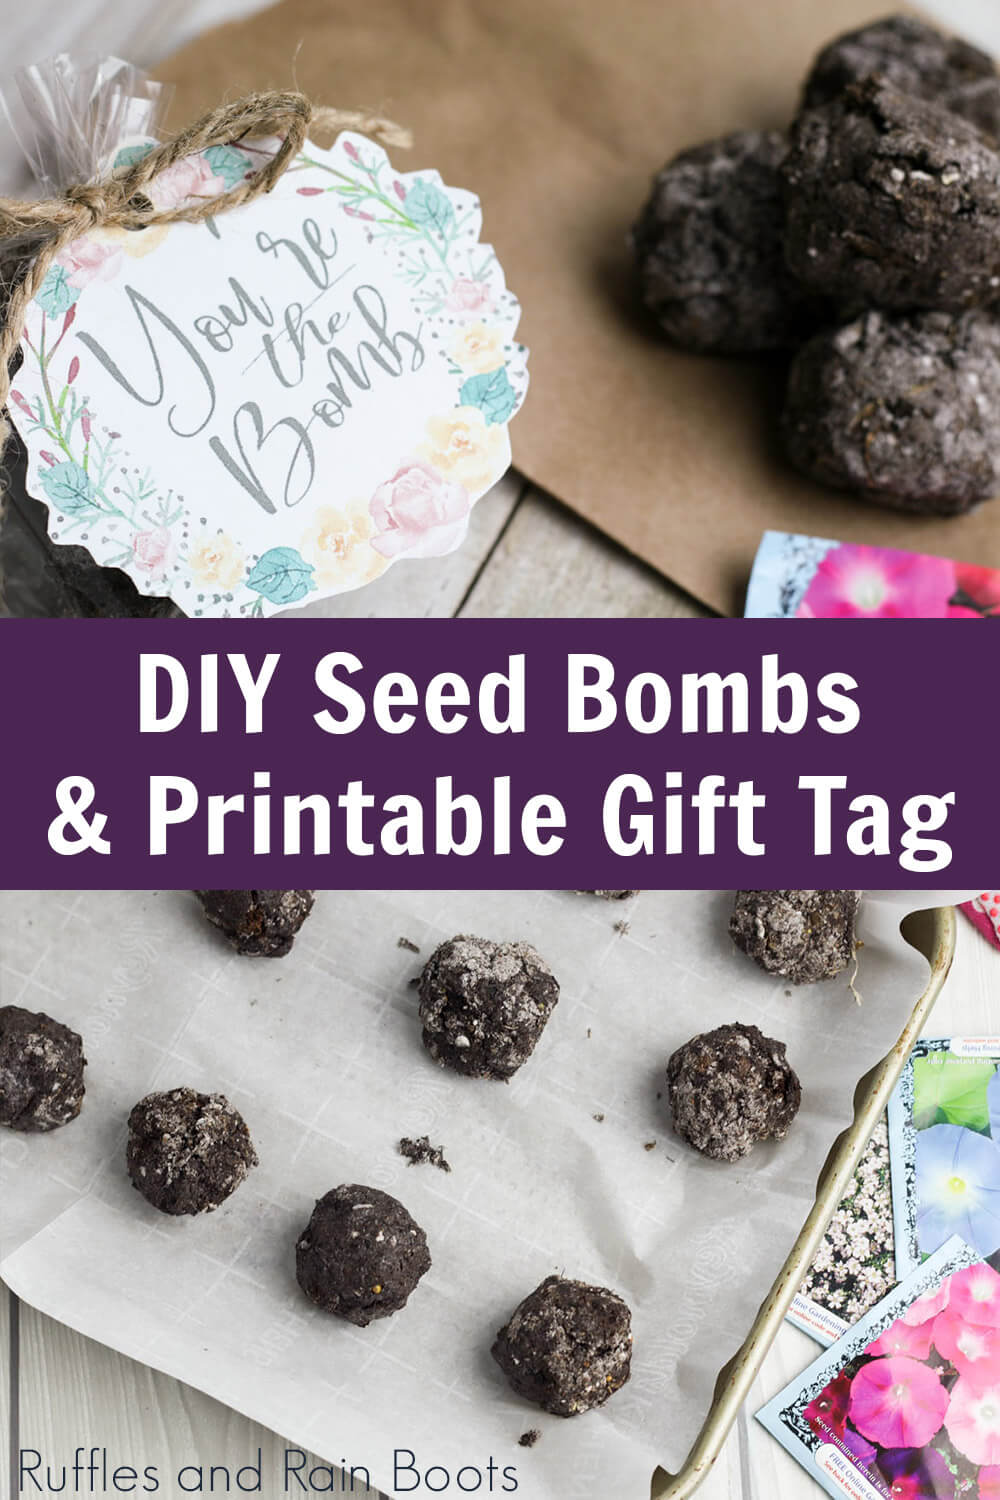 photo collage of diy seed bomb recipe with text which reads diy seed bombs & printable gift tags